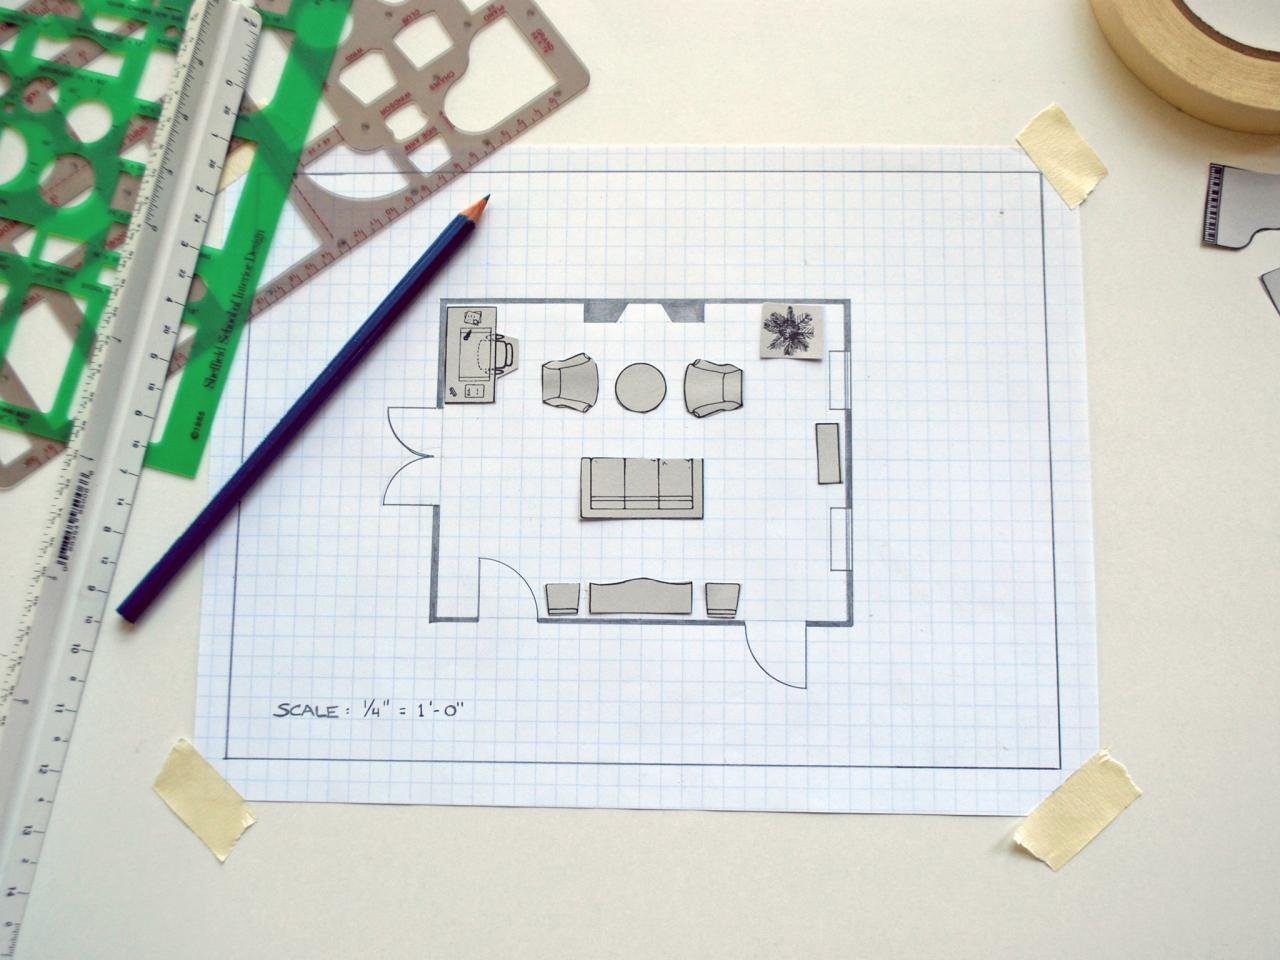 Interior Design Plans how to create a floor plan and furniture layout | hgtv